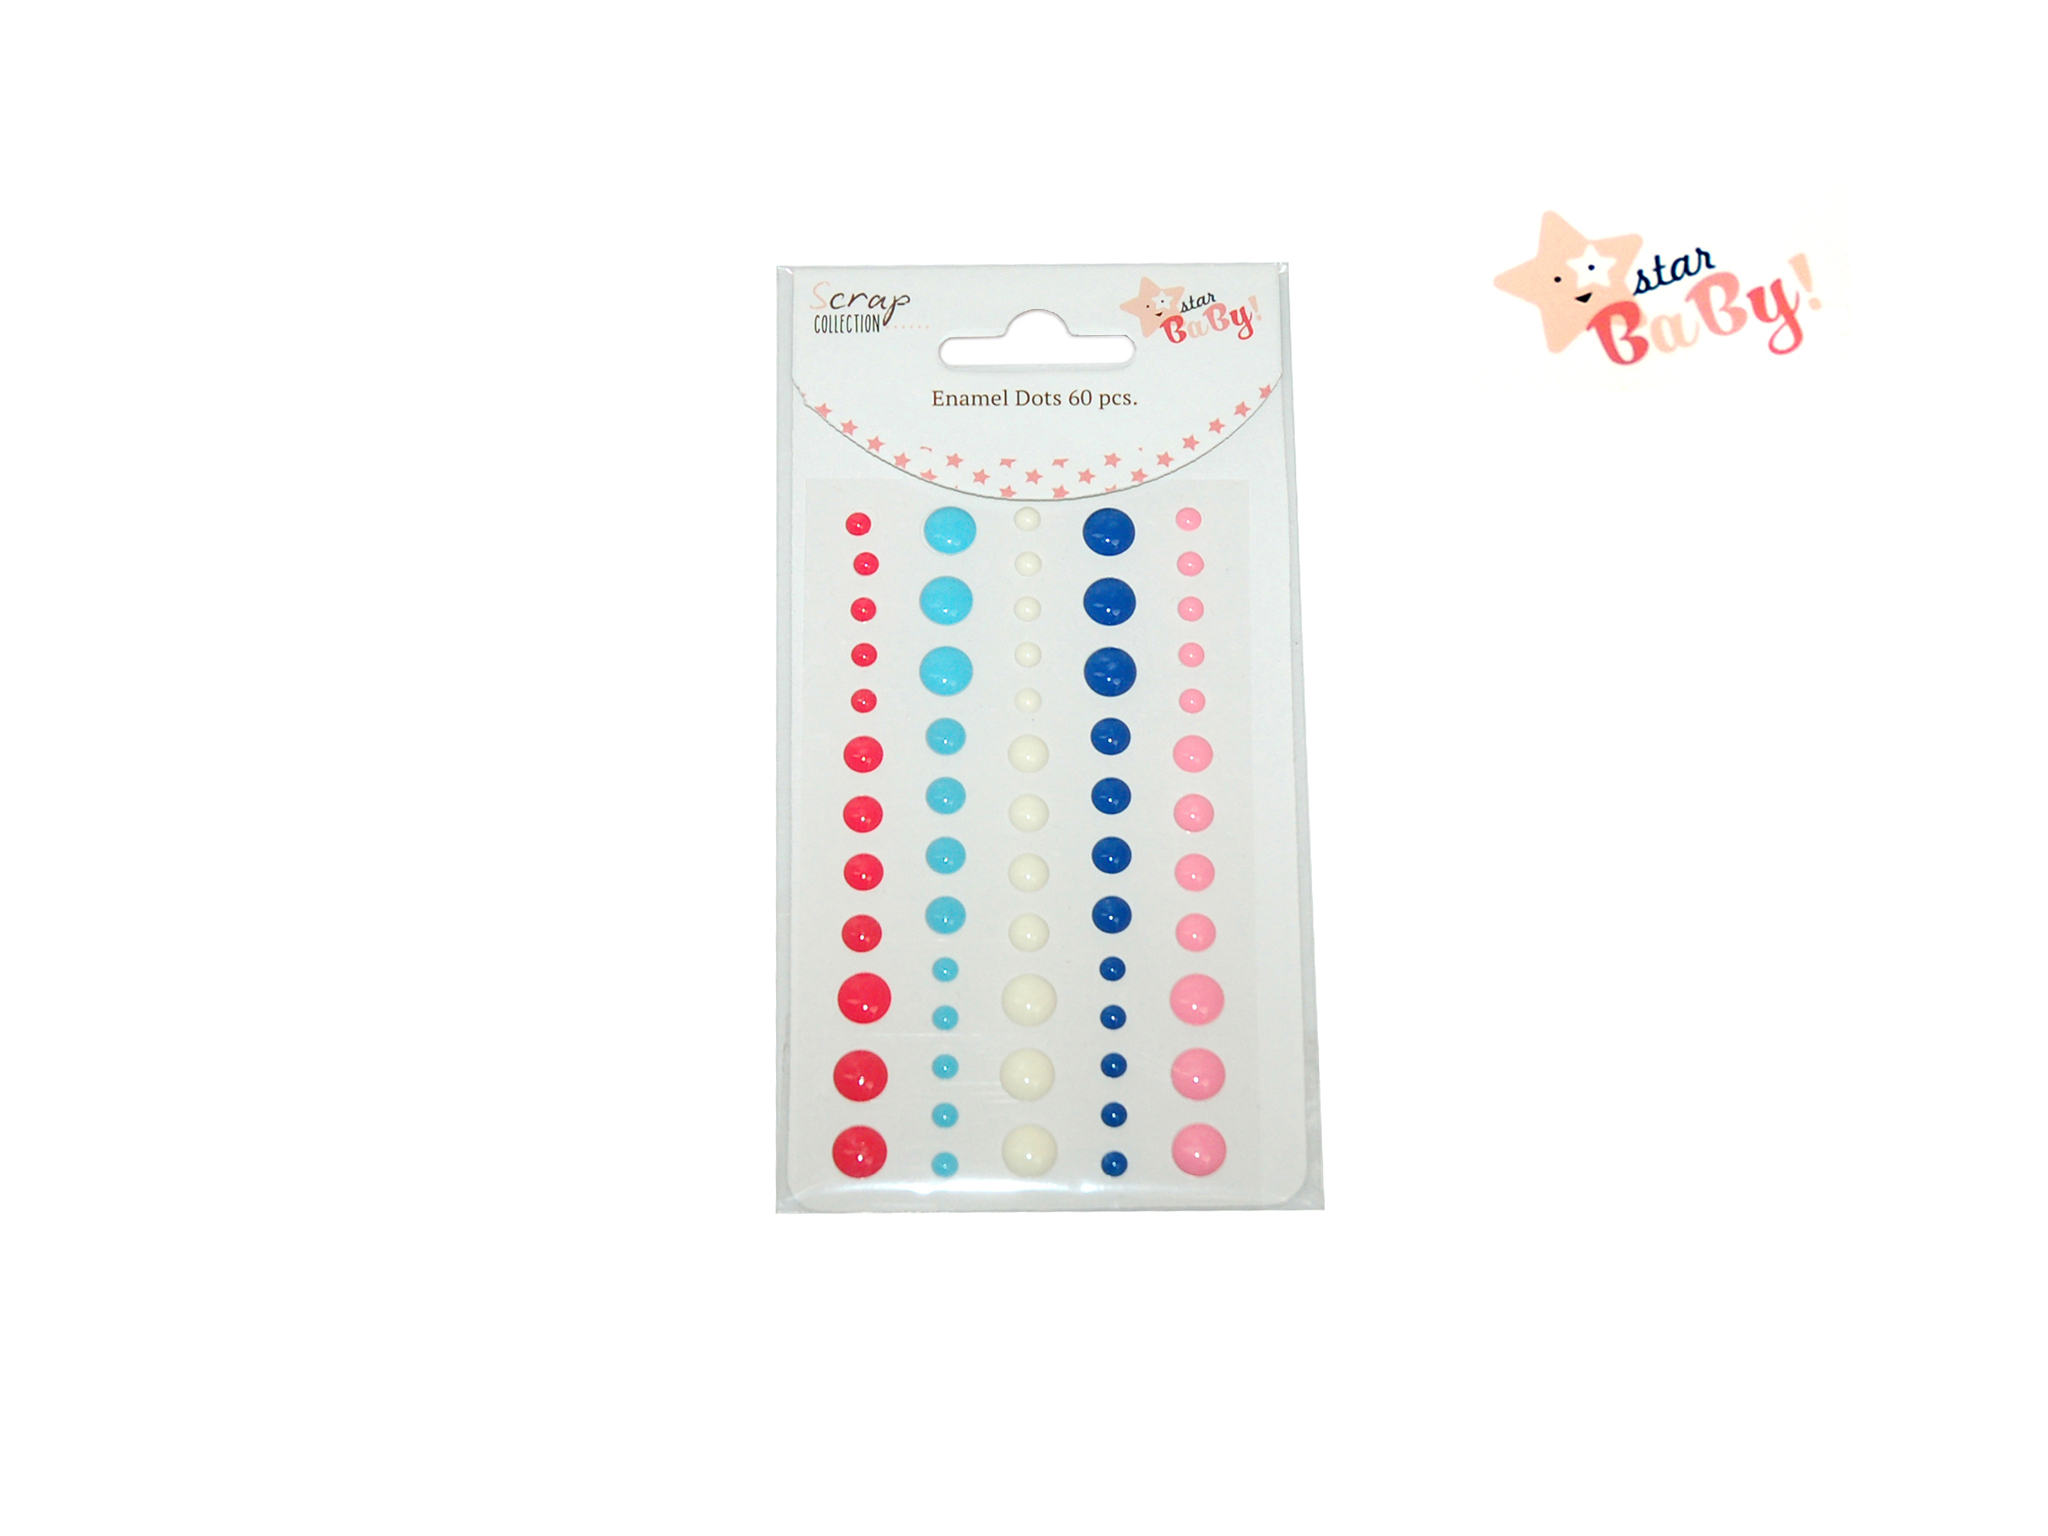 ENAMEL DOTS 60 PCS STAR BABY GIRL cod. 2501777